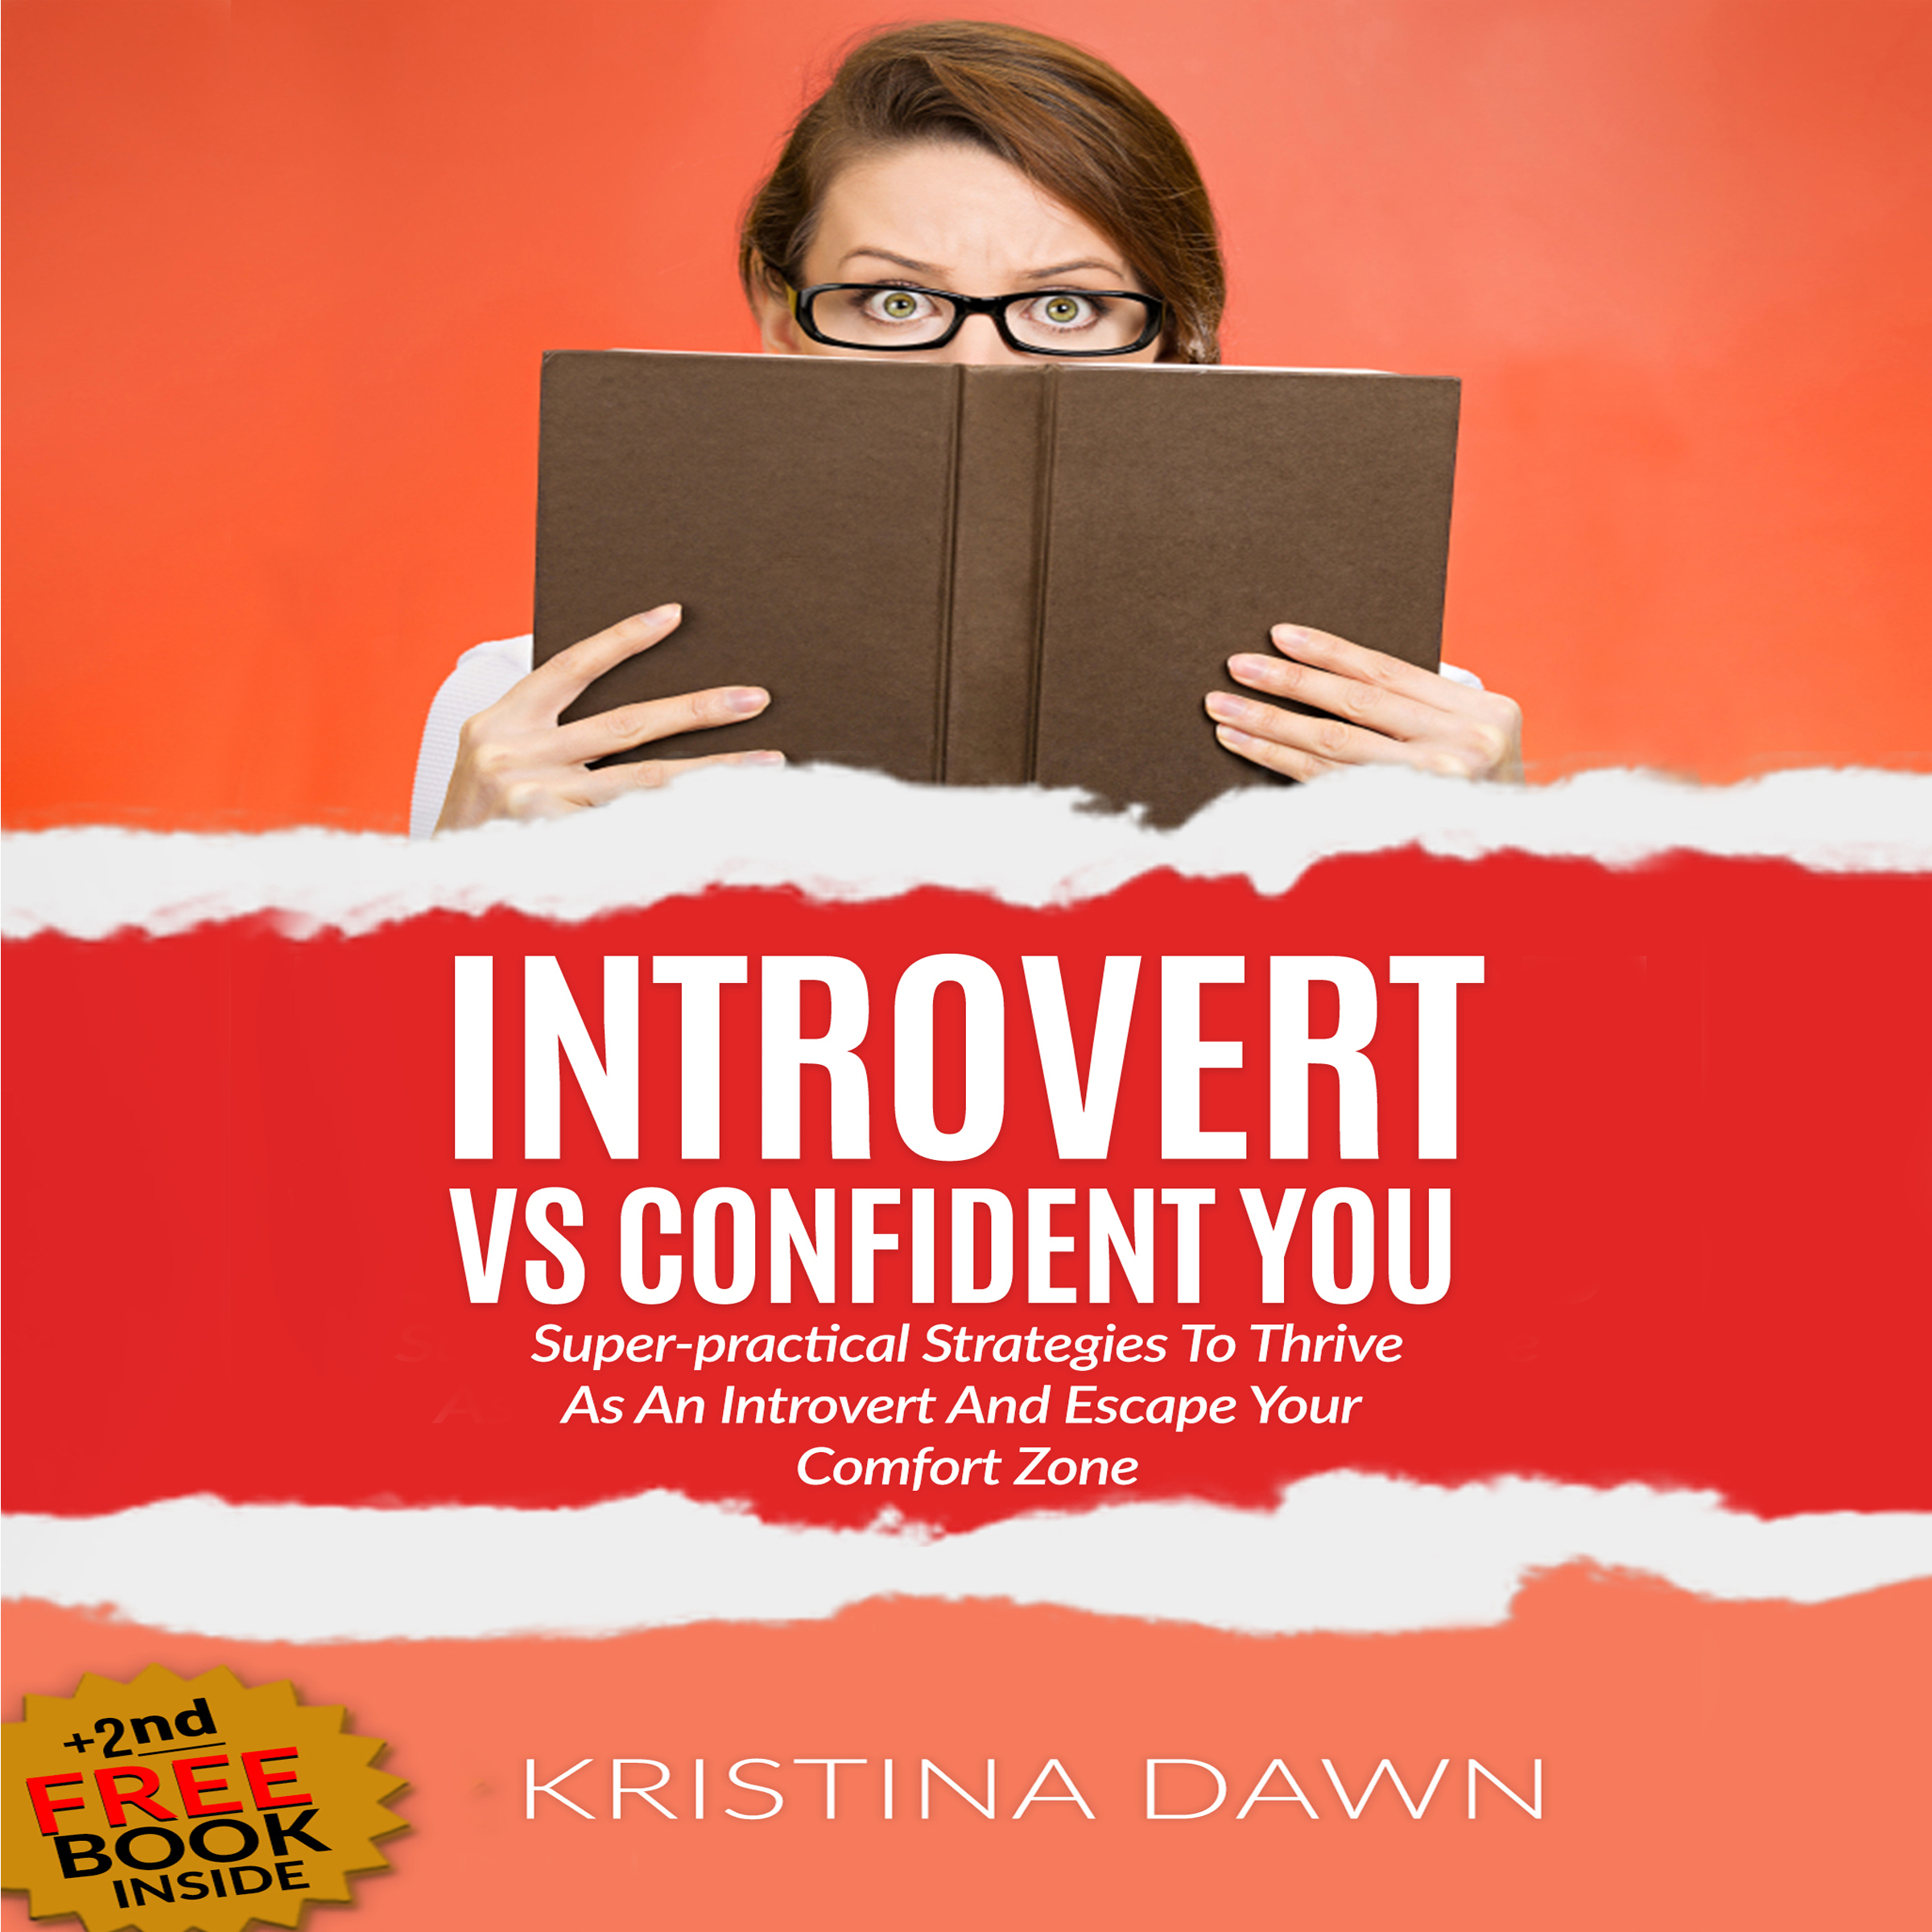 Printable Introvert Vs. Confident You: Super-Practical Strategies to Thrive as an Introvert and Escape Your Comfort Zone Audiobook Cover Art